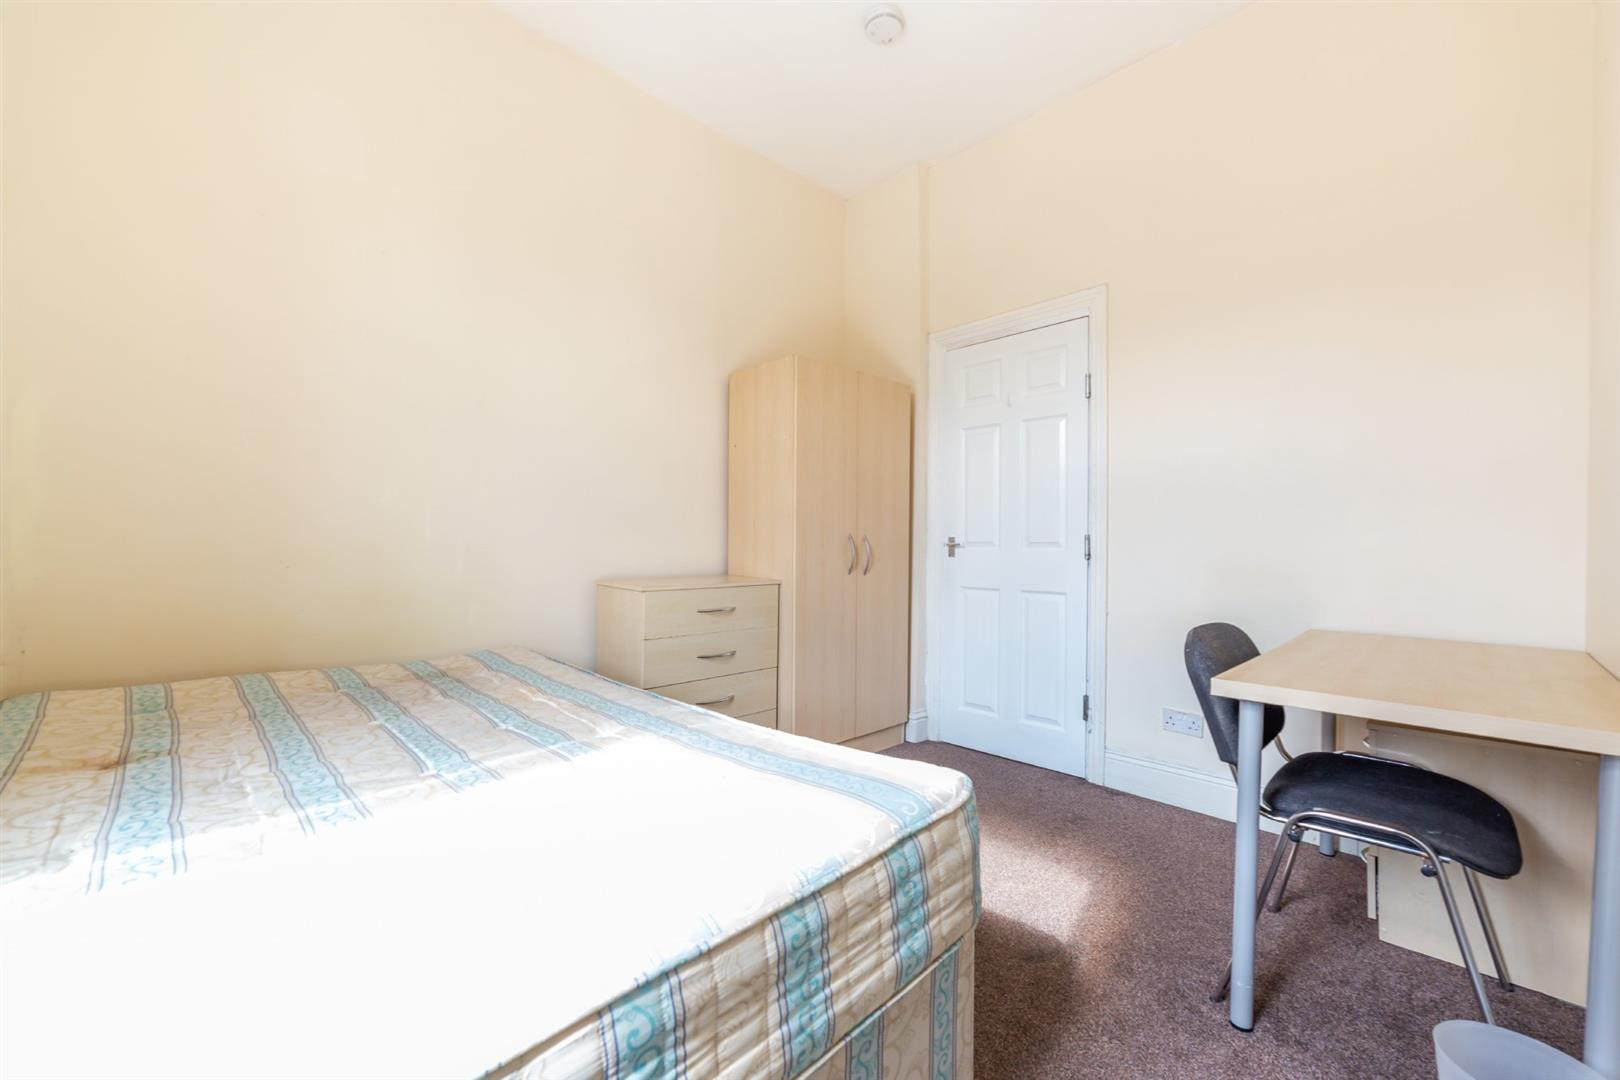 5 bed terraced house to rent in Newcastle Upon Tyne, NE6 5JY  - Property Image 9